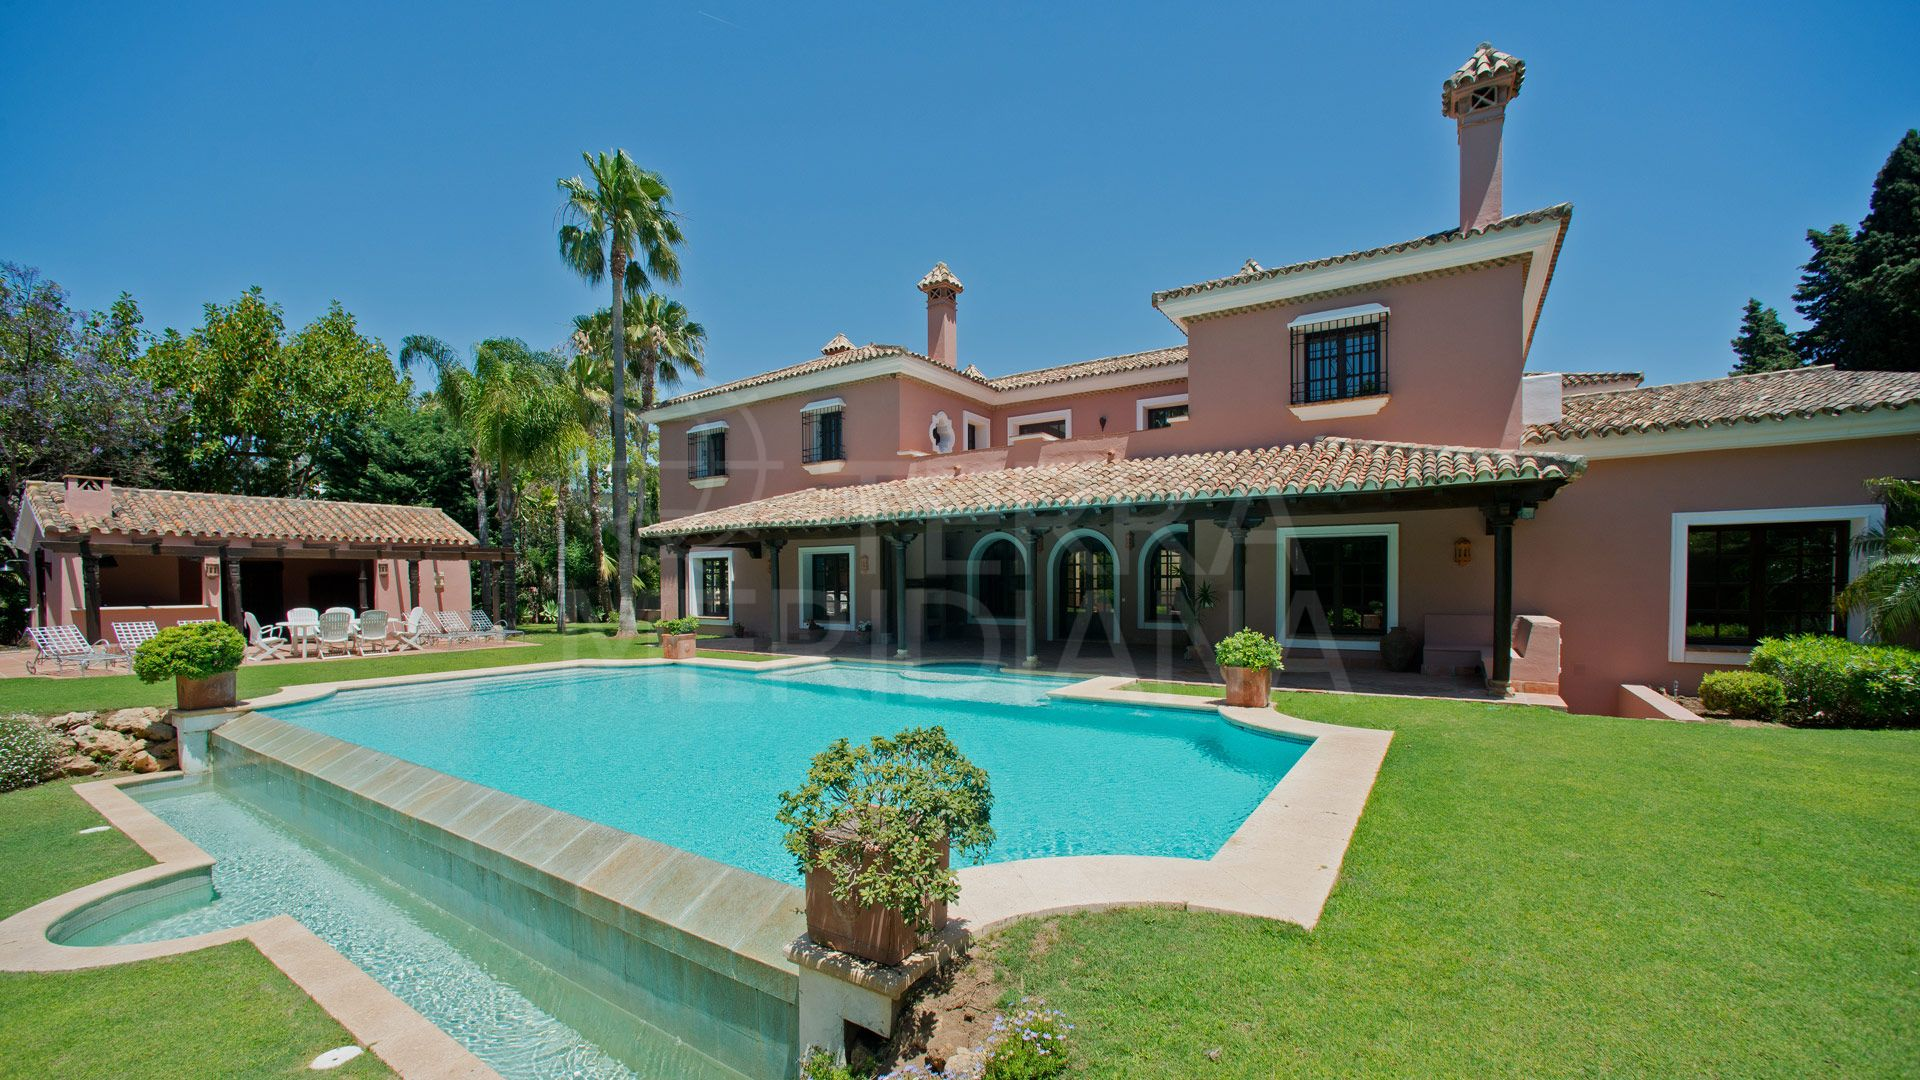 Luxury six bedroom beachside villa for sale, Guadalmina Baja, Marbella